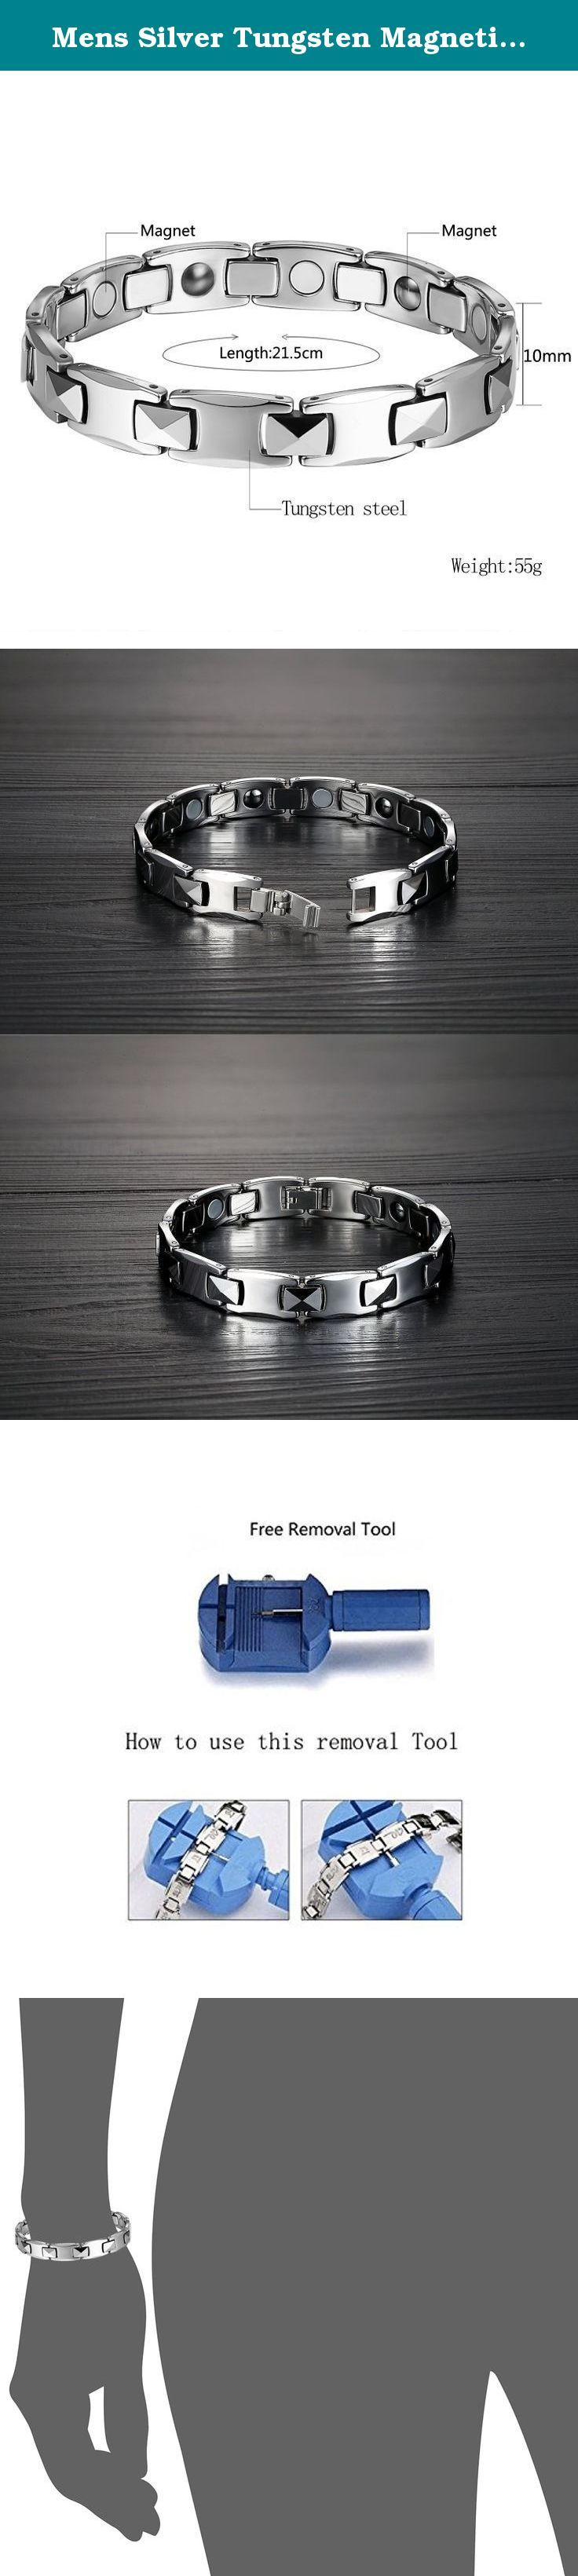 Mens Silver Tungsten Magnetic Link Bracelet Jewelry in Velvet Box with Free Link Removal Tool. Mens Silver Tungsten Magnetic Link Bracelet Jewelry in Velvet Box with Free Link Removal Tool This bracelet will always stay polished and it's perfect for people with active lifestyle. A bracelet can put a sophisticated finishing touch on a business suit or add something sleek to a casual ensemble, but many men avoid wearing bracelets due to worries about scratching and having to polish and…